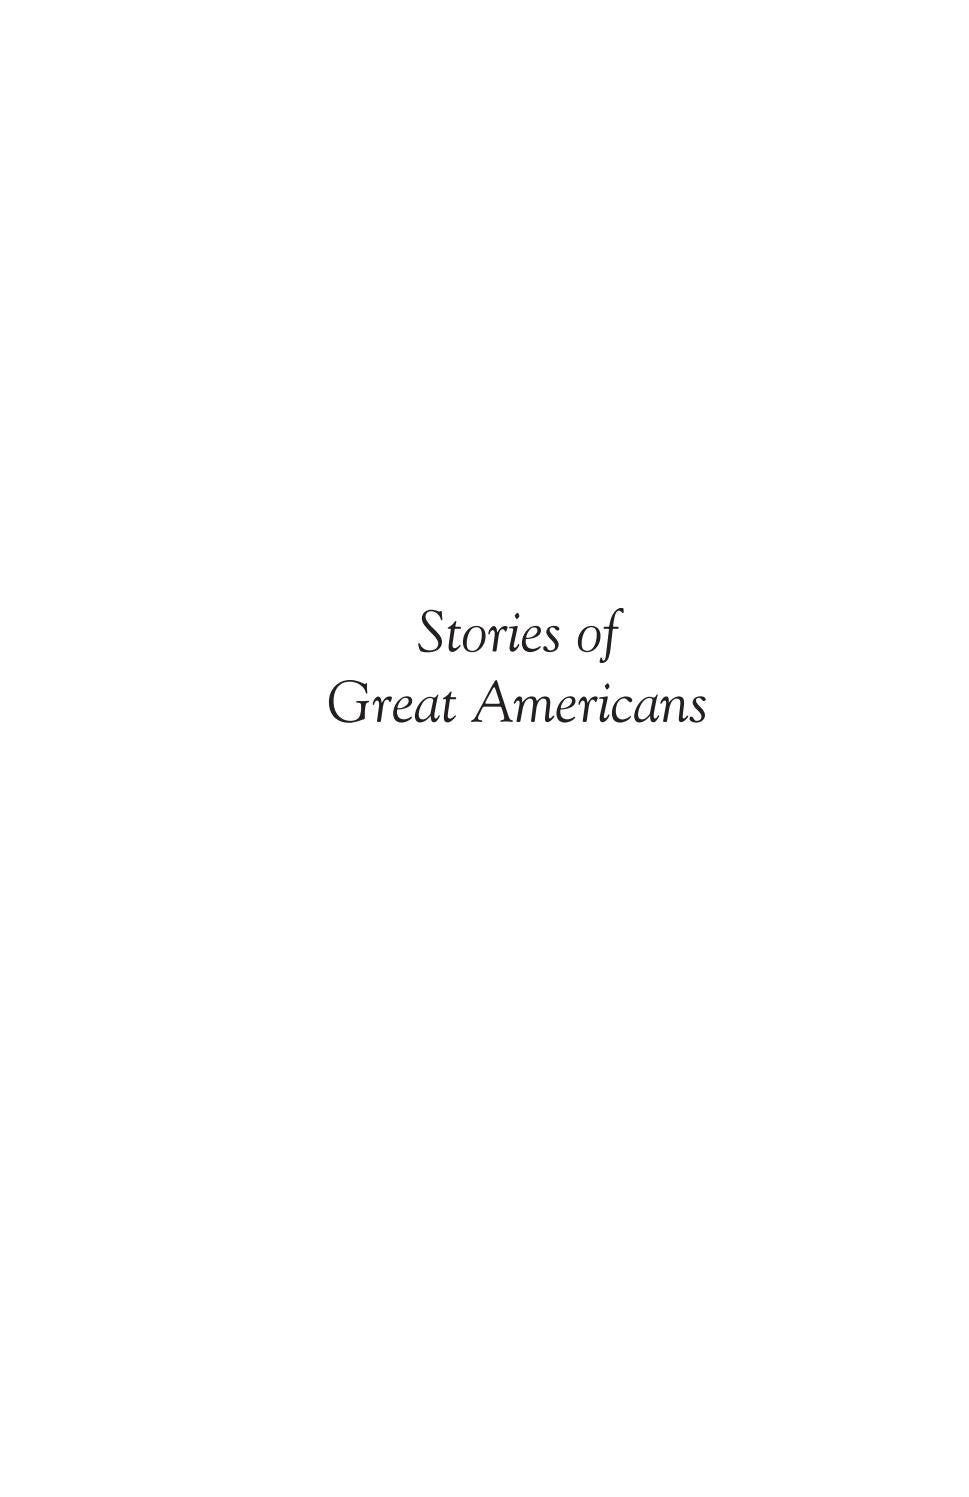 Fabulous Stories Of Great Americans By Libraries Of Hope Issuu Ibusinesslaw Wood Chair Design Ideas Ibusinesslaworg